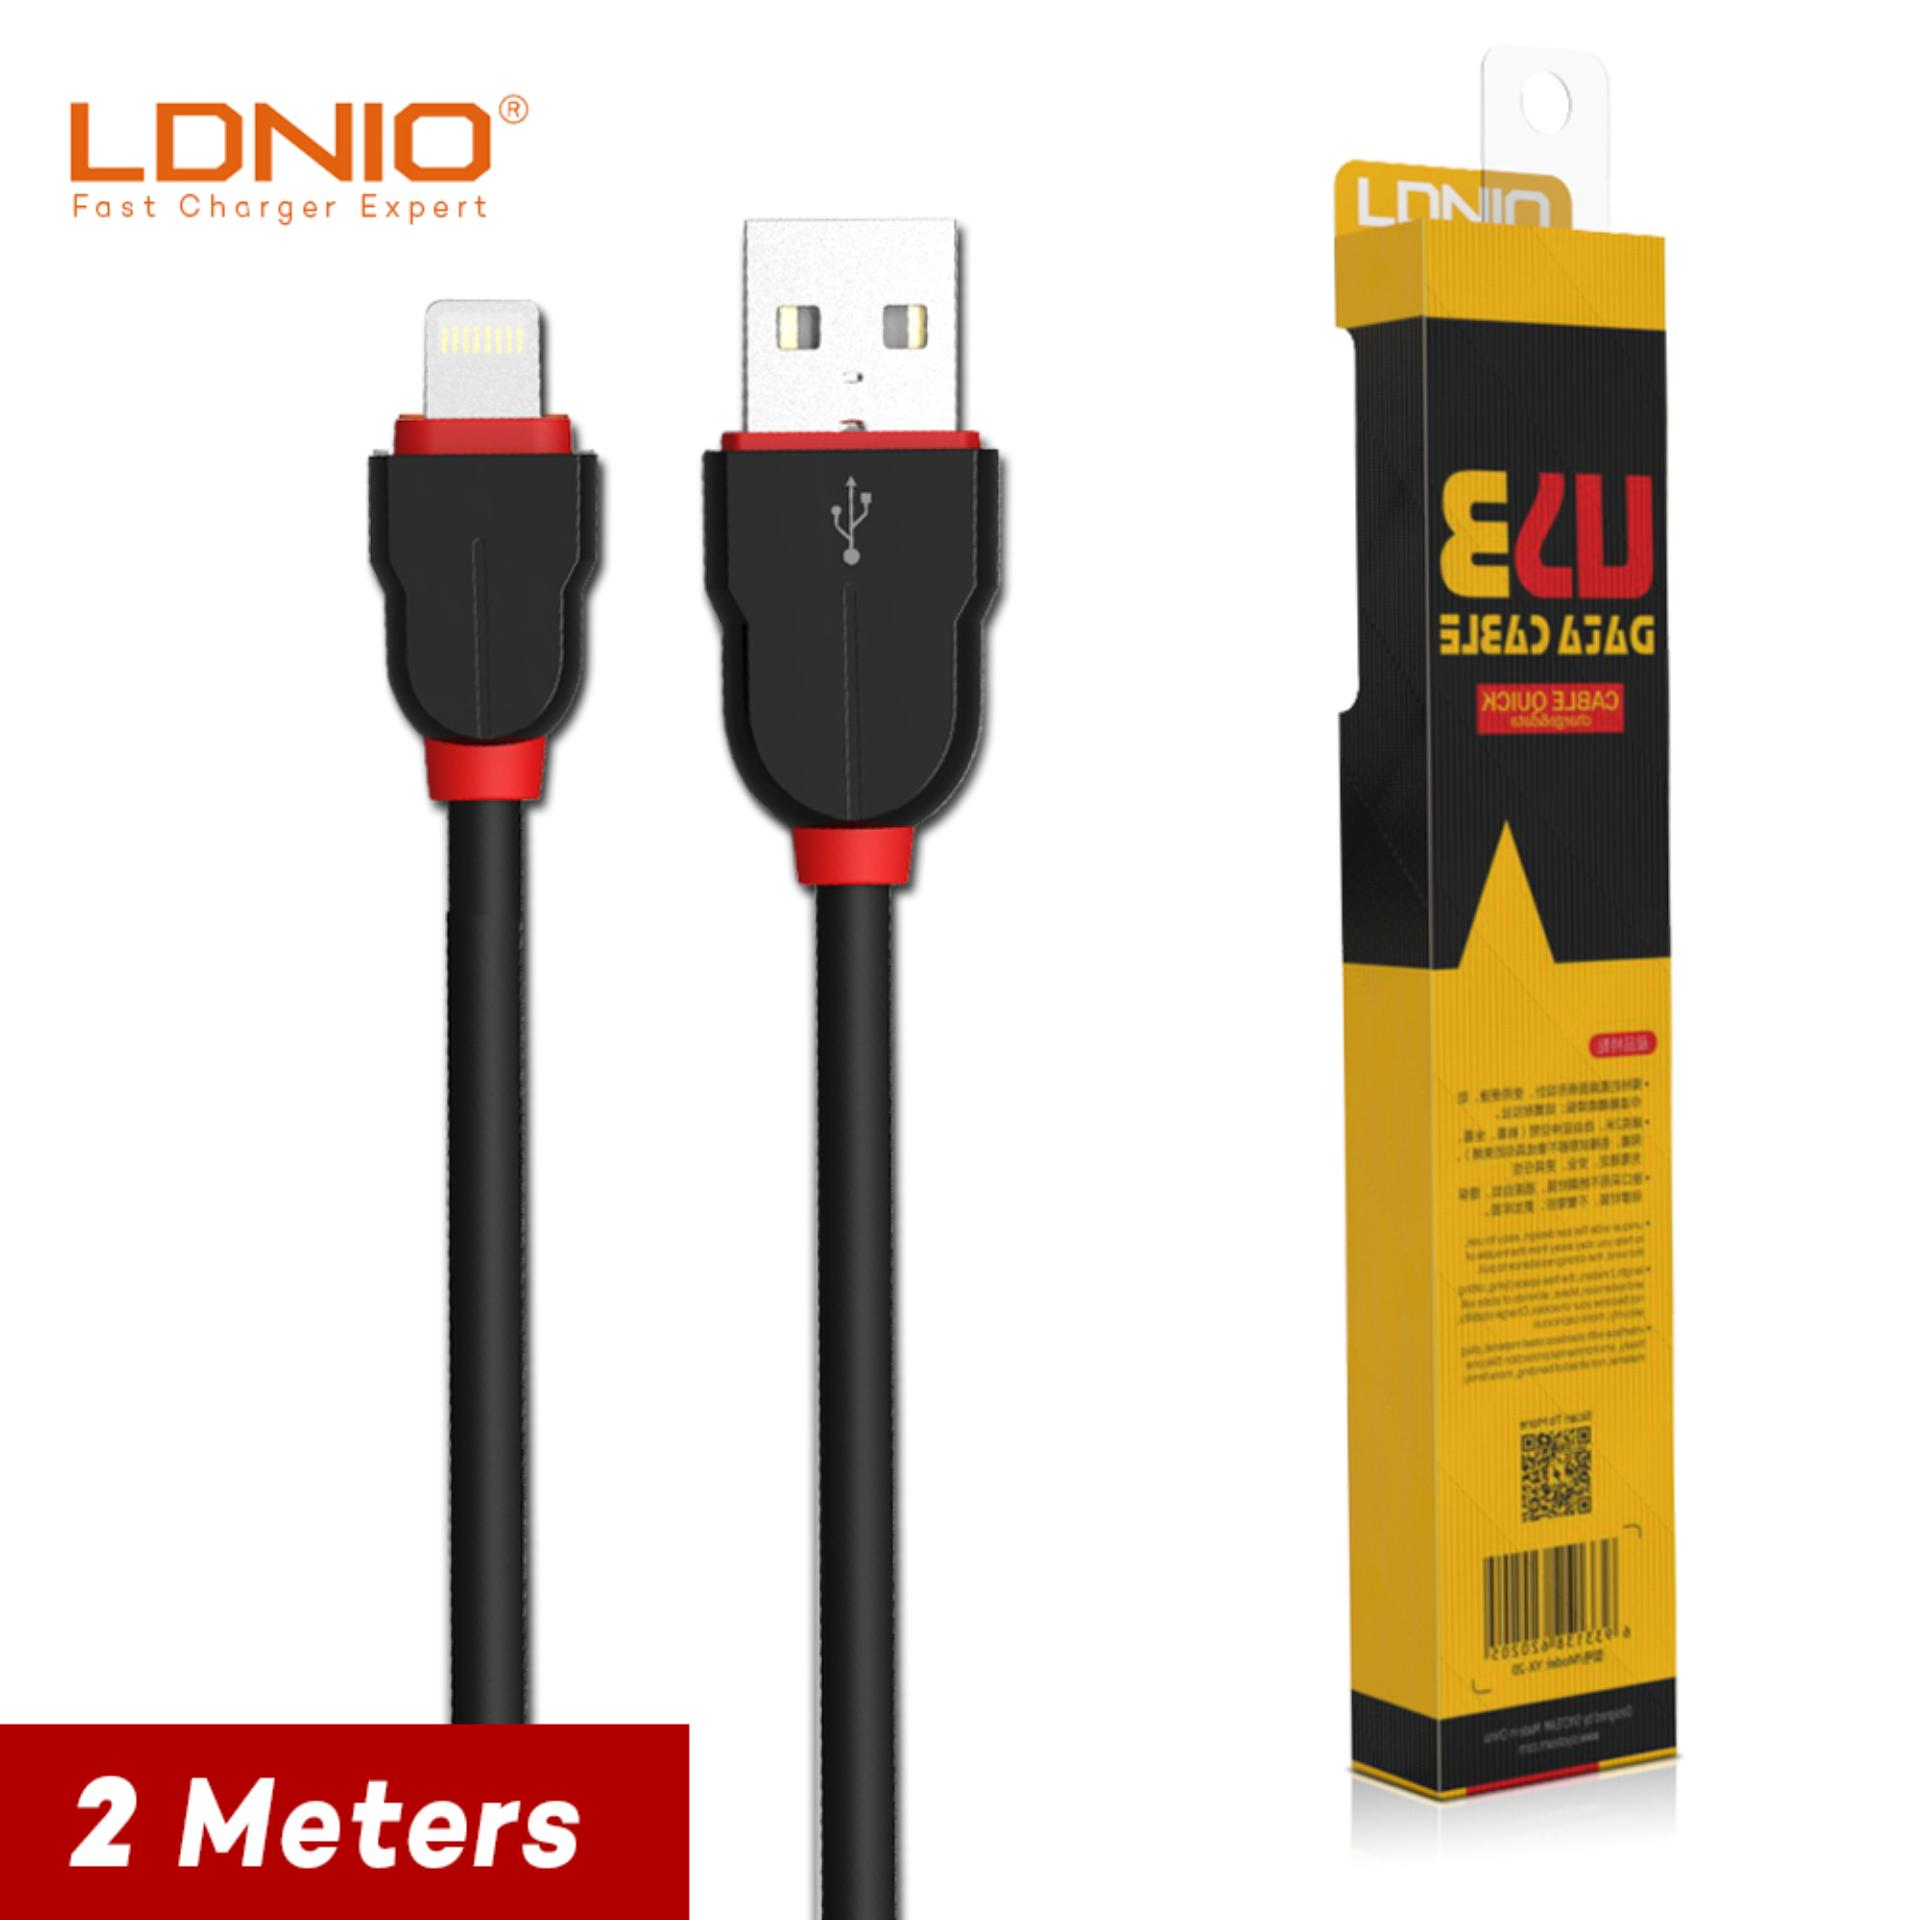 LDNIO LS02 2M Fast Charge Lighting USB Cable for iPhone 6/6s/7 (Black/Red)